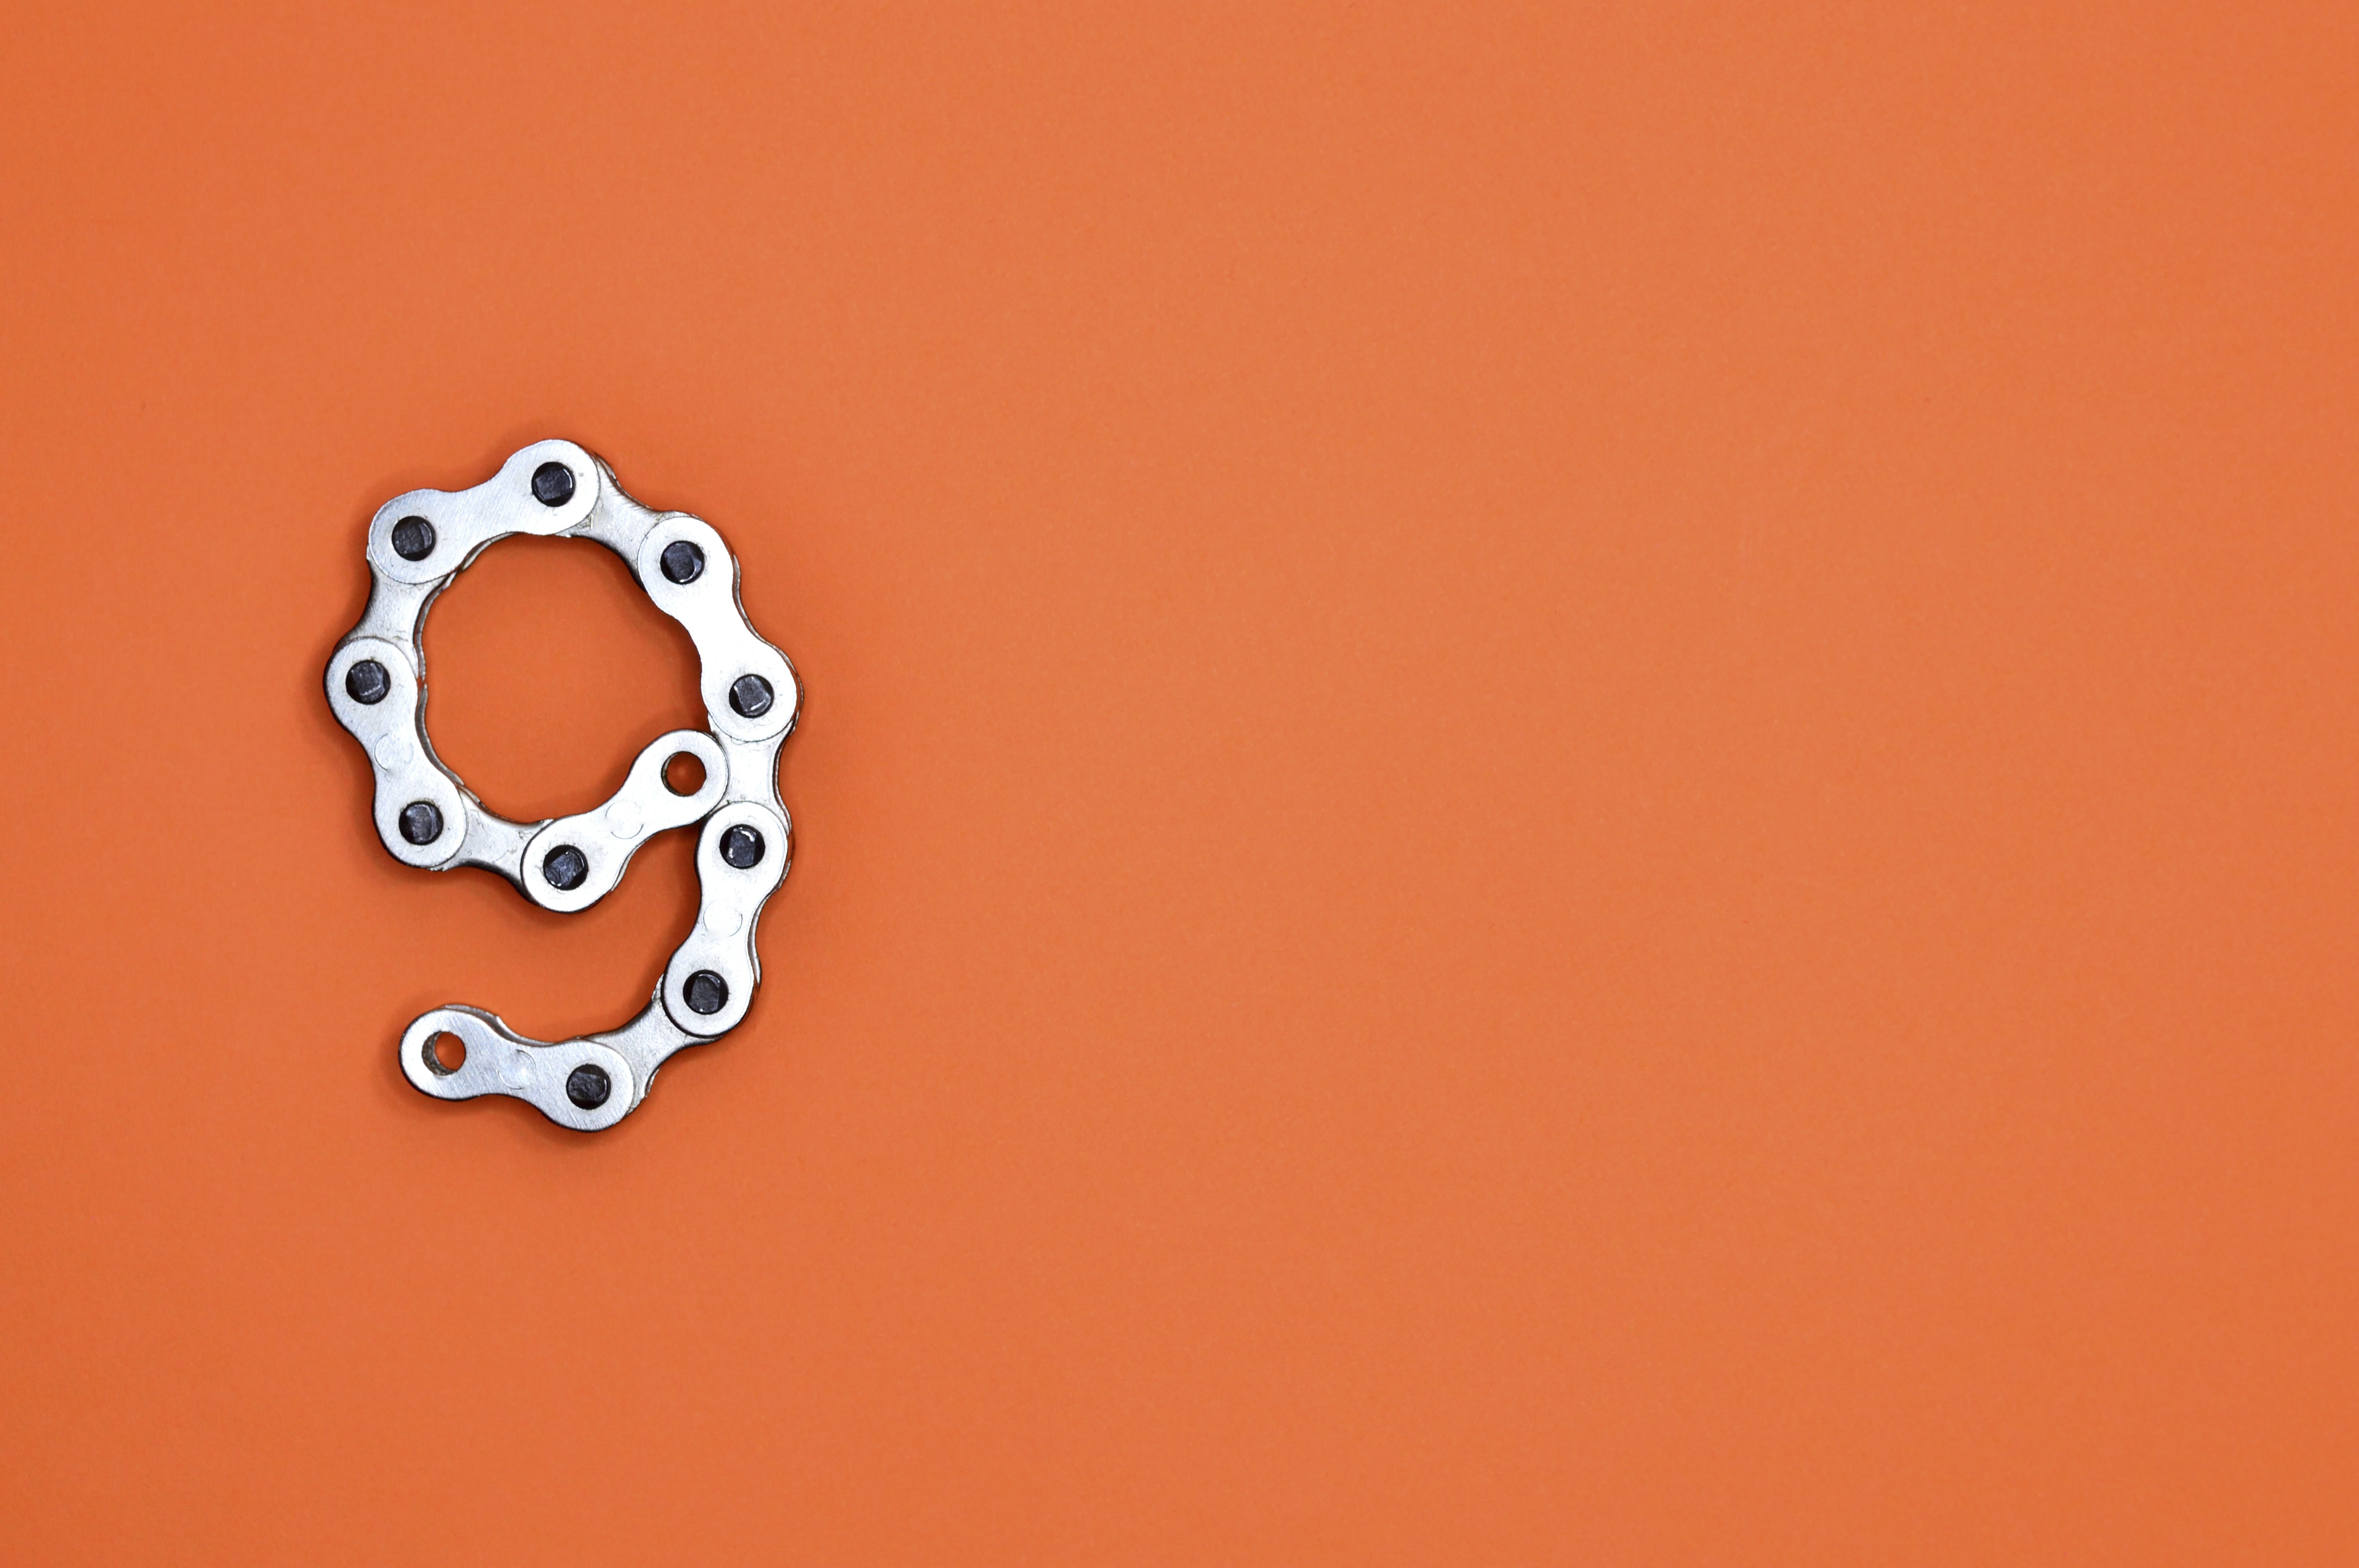 Gray Bicycle Chain on Orange Surface